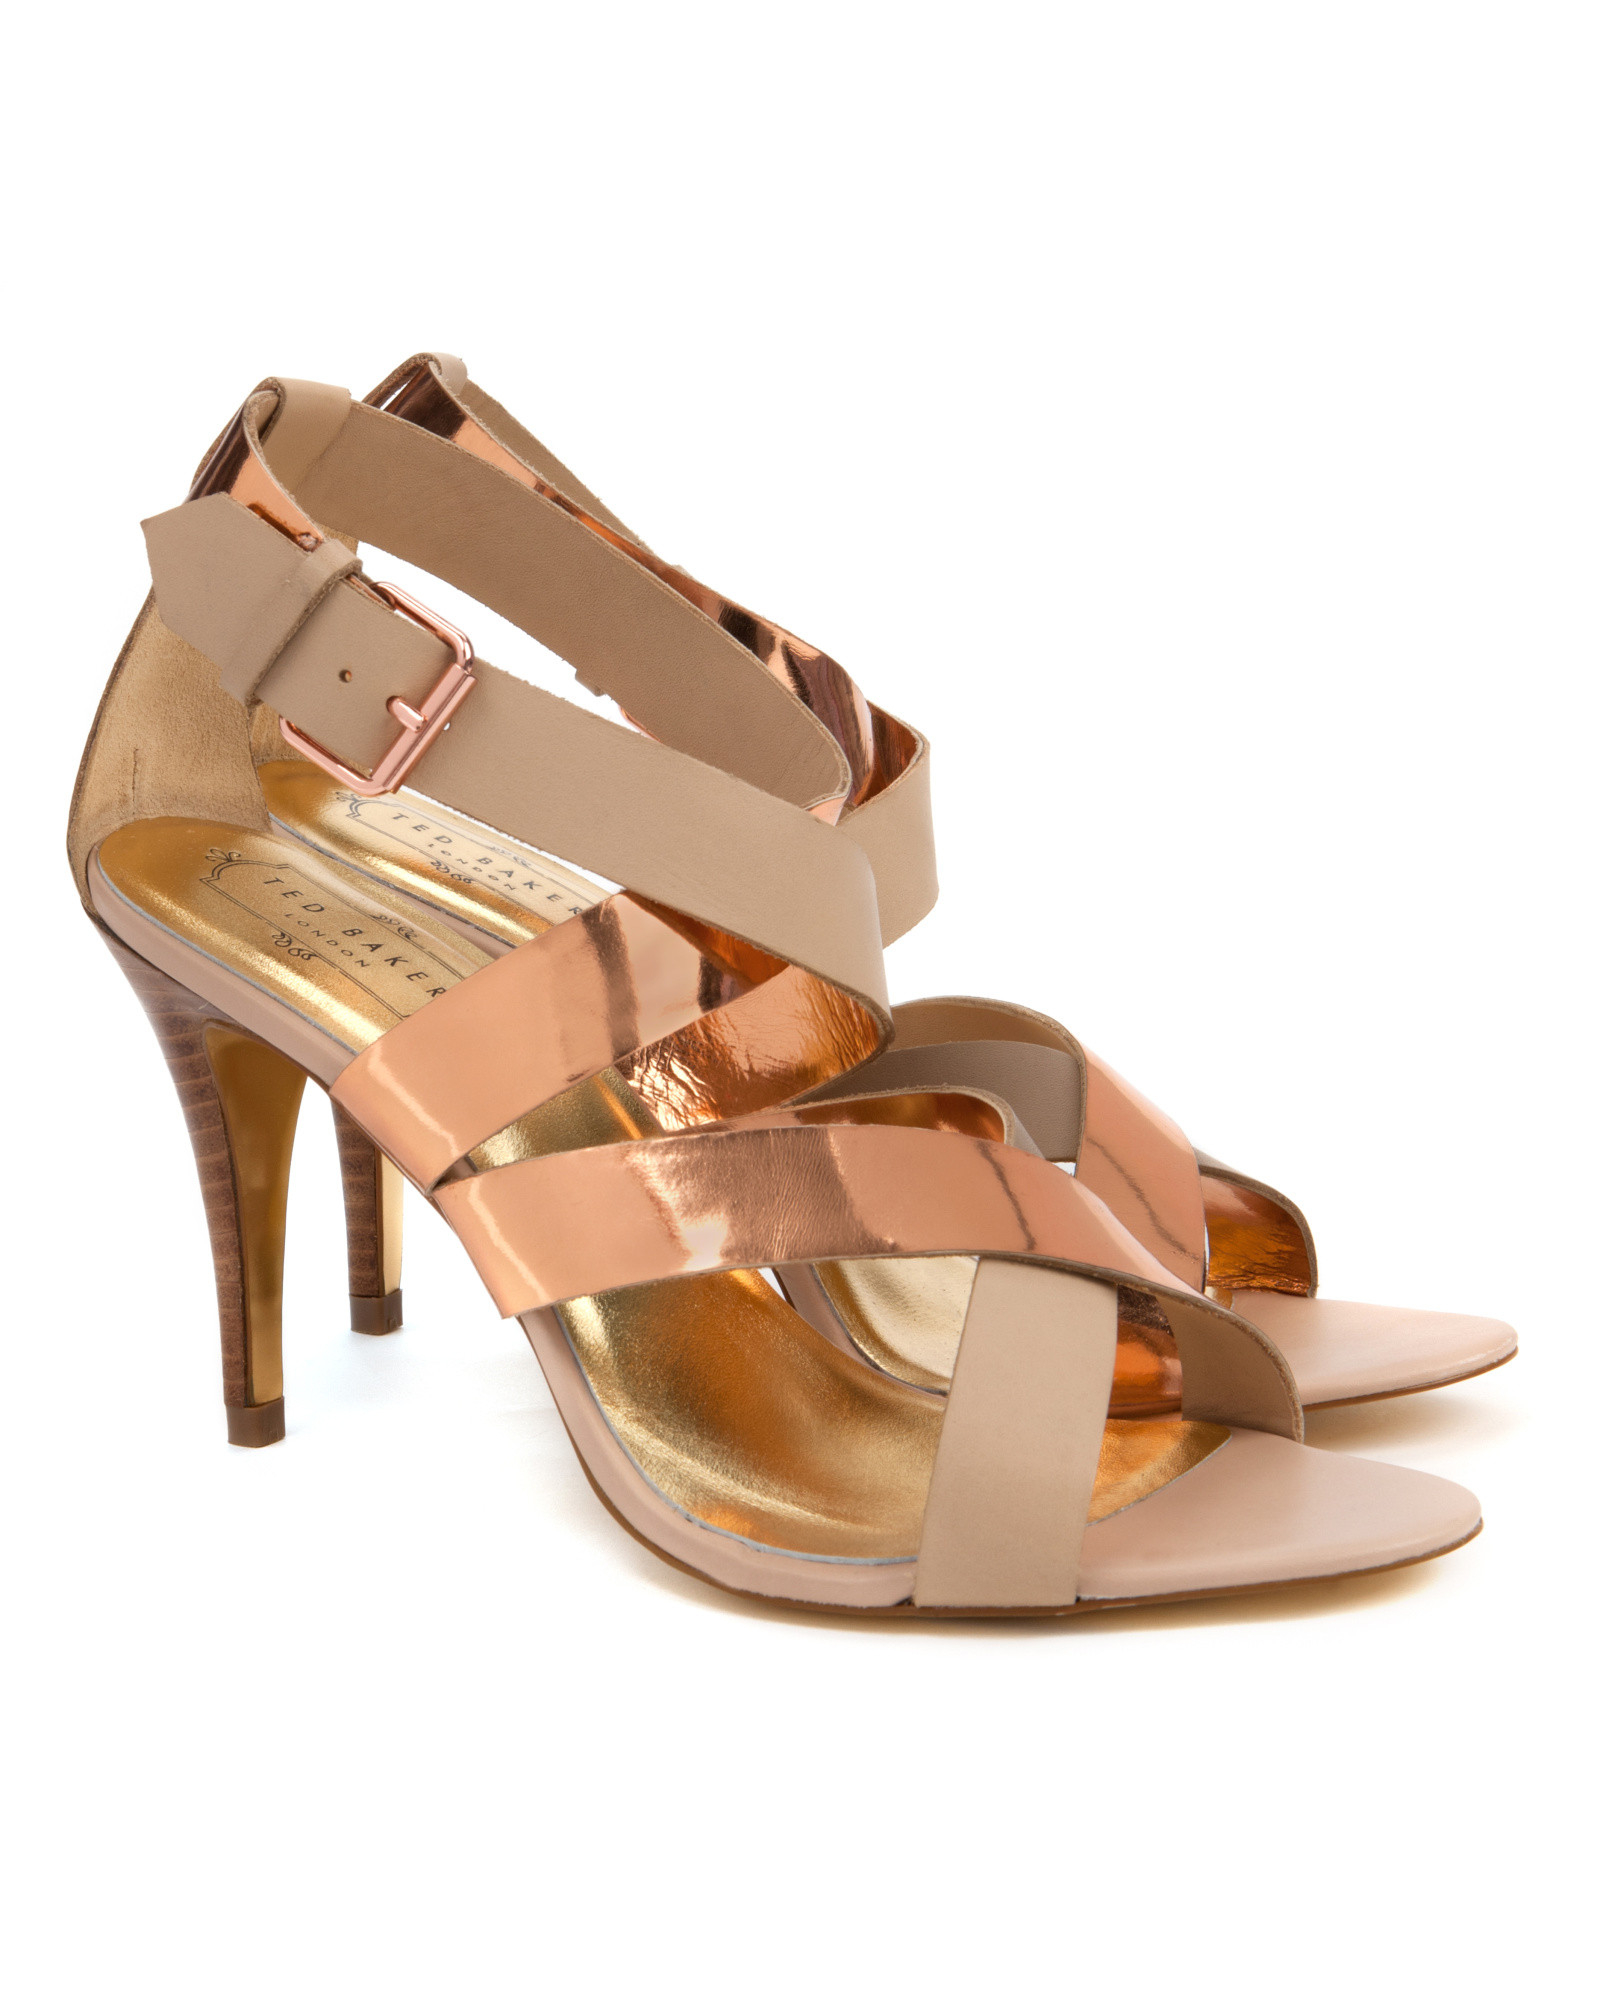 6d64ee4af Ted Baker Gladiator Heel Sandals in Natural - Lyst